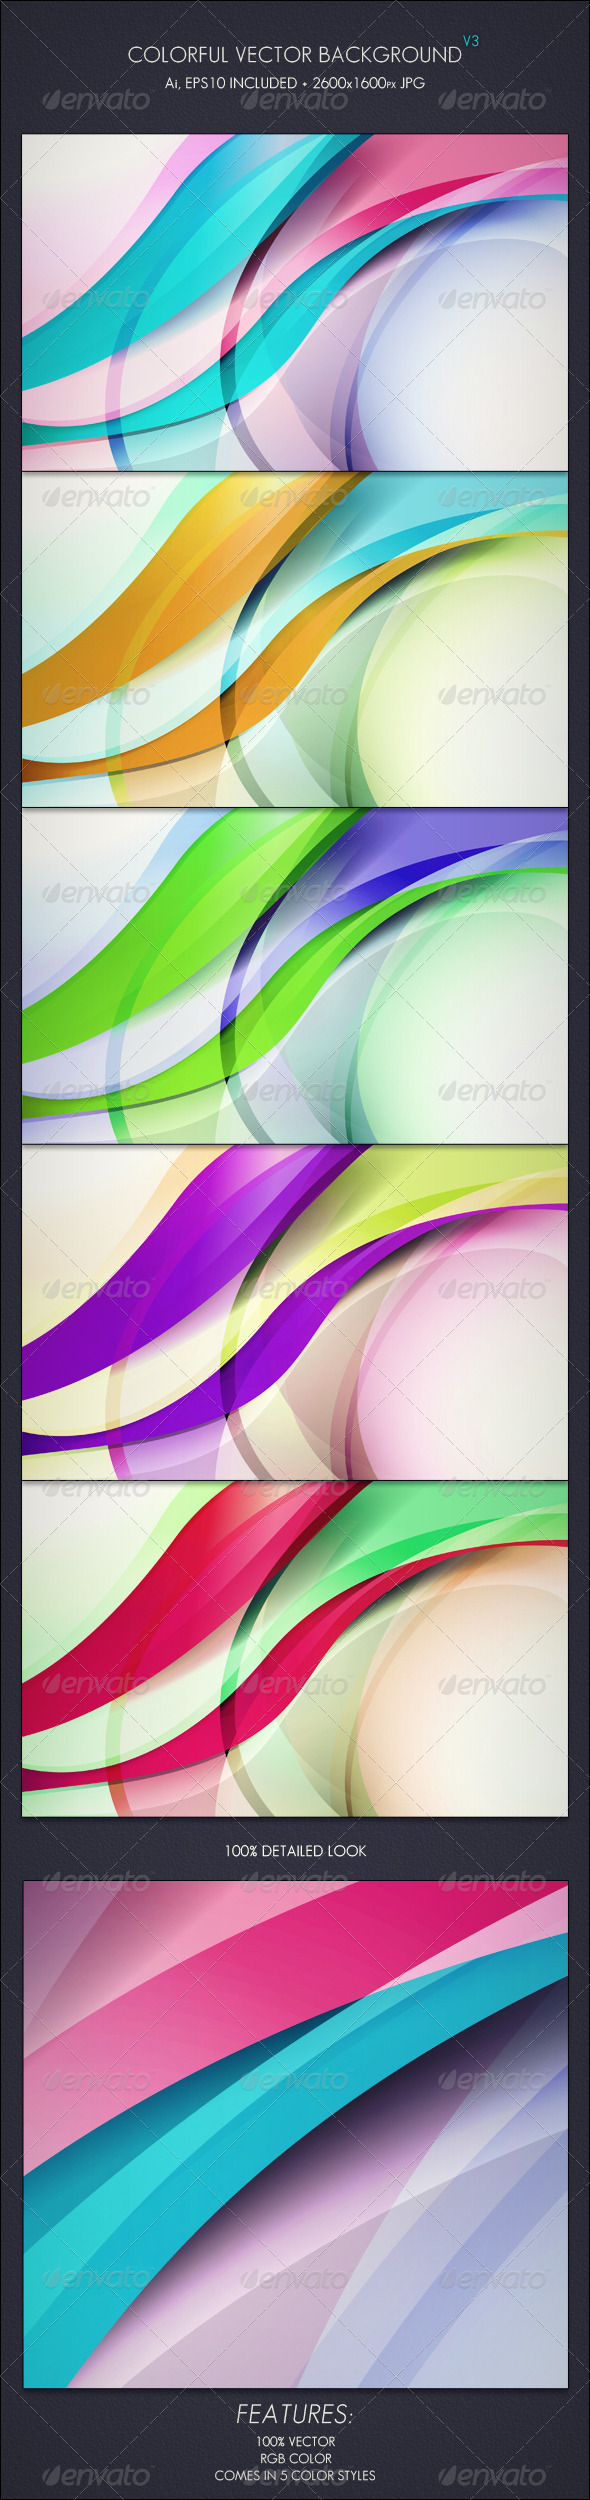 Colorful Vector Background V3 - Backgrounds Decorative